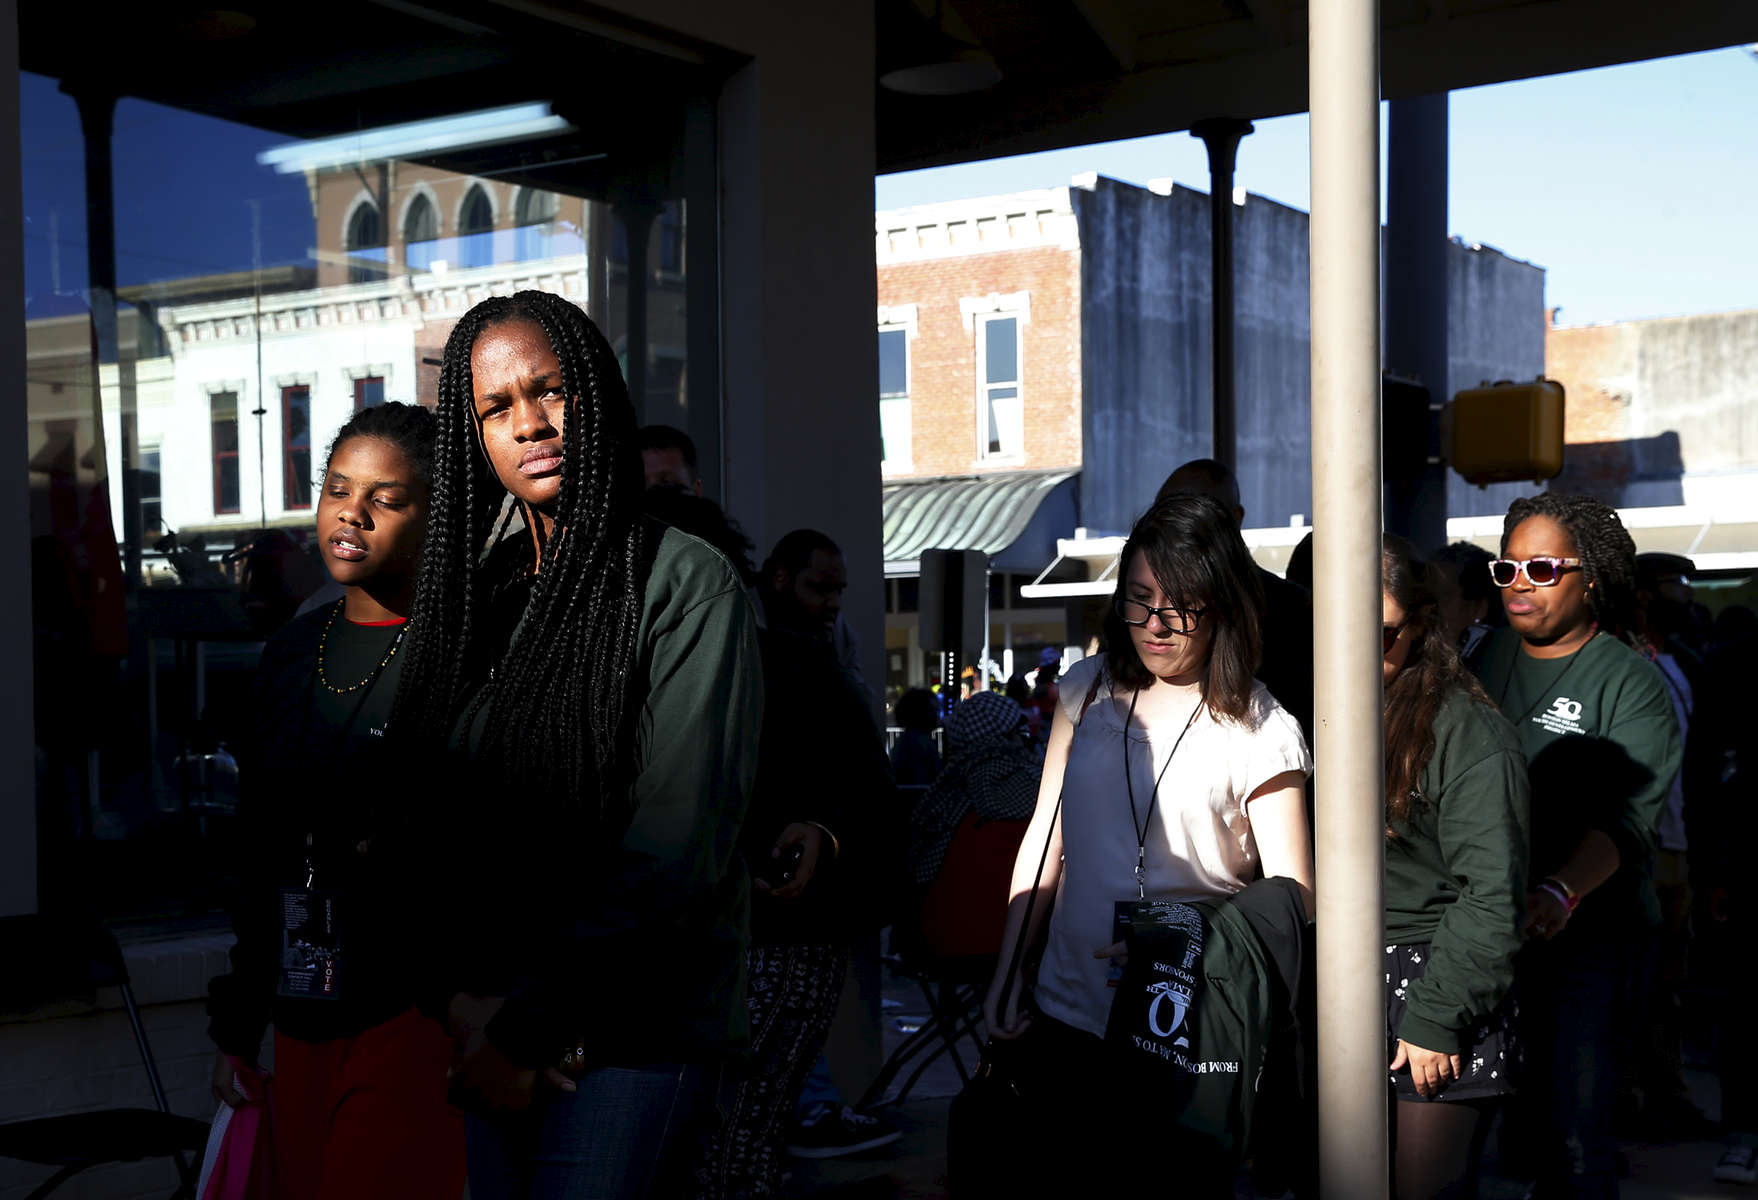 Selma, Alabama -- 3/07/2015-- UMass student Marie Cejour, 24, (2nd from L) links arms with Kaya Van Der Meer, 16, (L) as they walk down a main street in Selma, Alabama with the rest of the members of their group March 7, 2015. Jessica Rinaldi/Globe StaffTopic: Reporter: